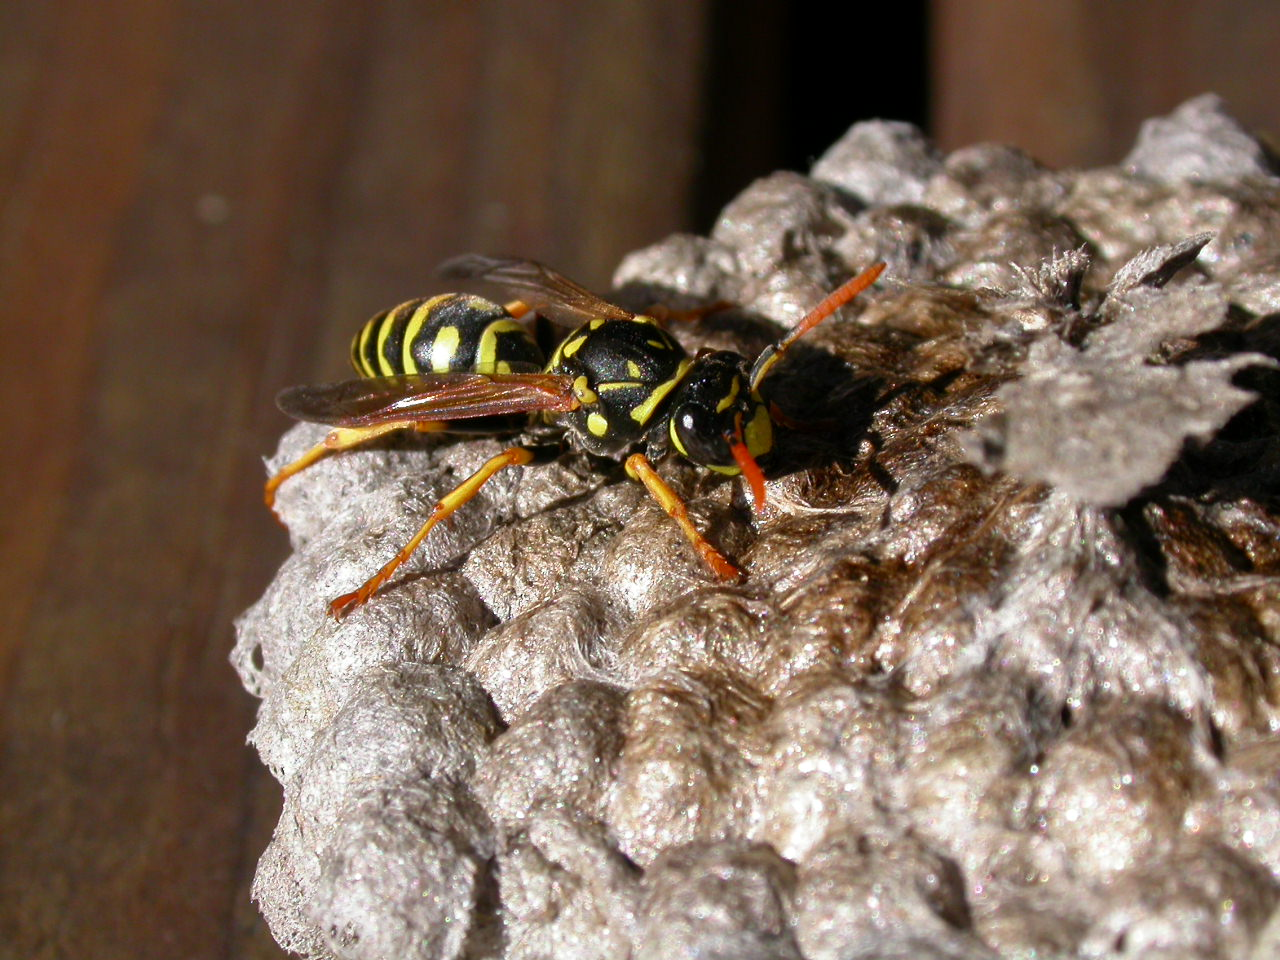 Wasp, Feeding, Fly, Hornet, Insect, HQ Photo